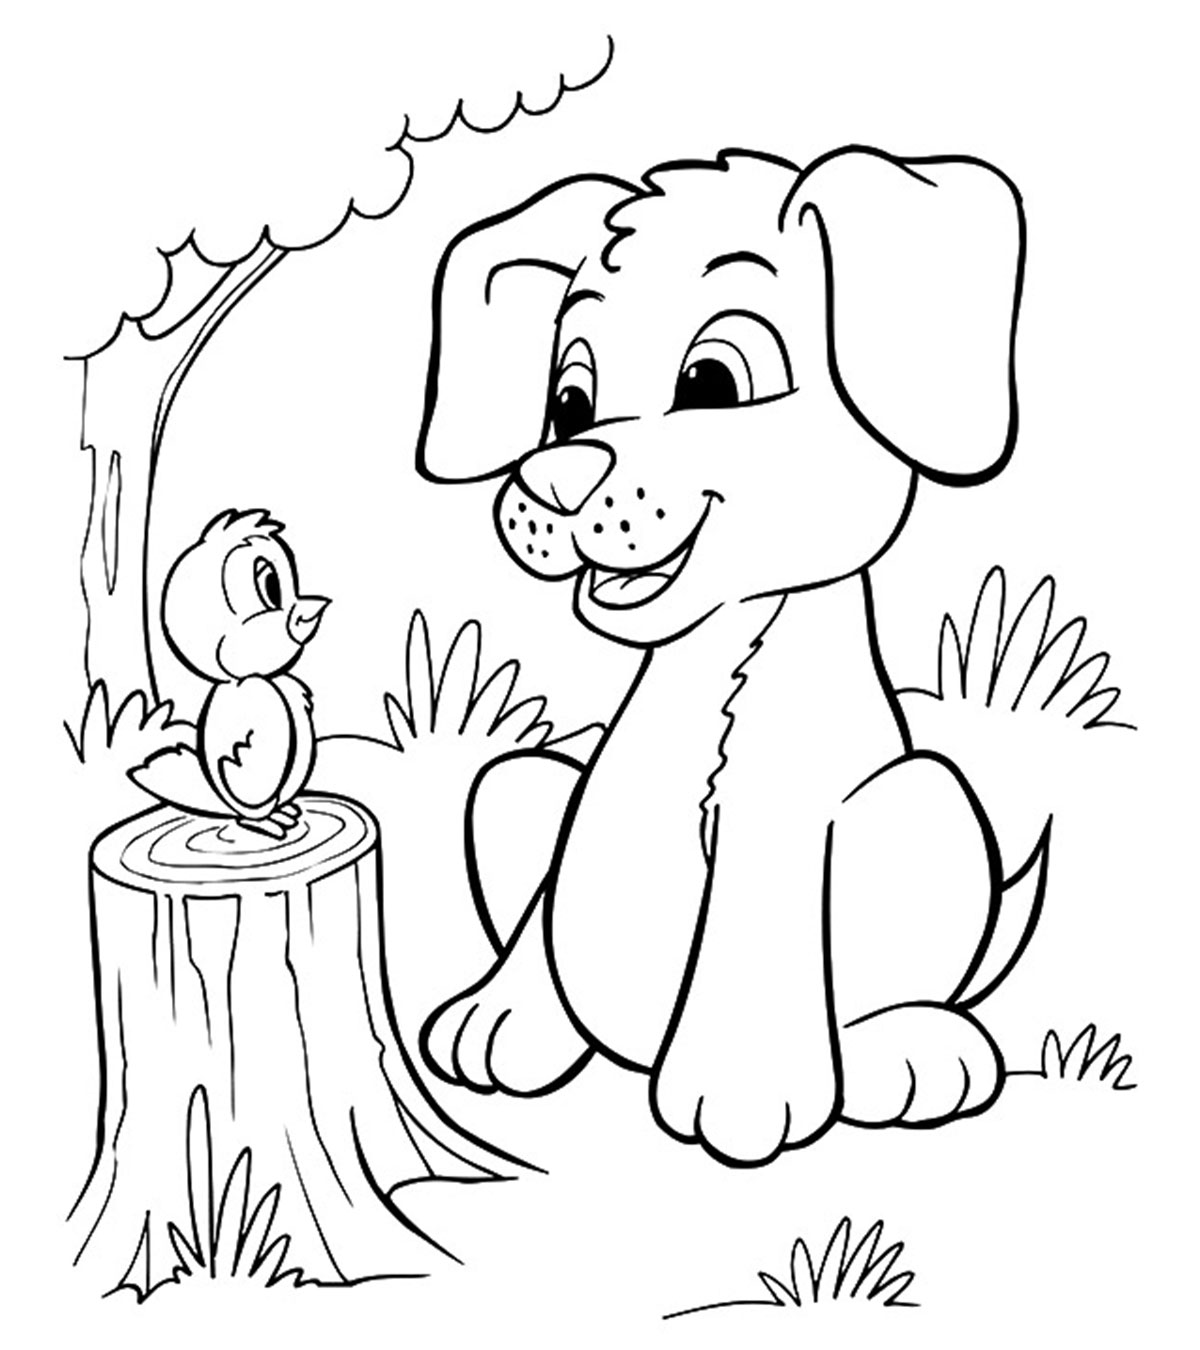 little dog coloring pages cute dog coloring pages to download and print for free little coloring pages dog